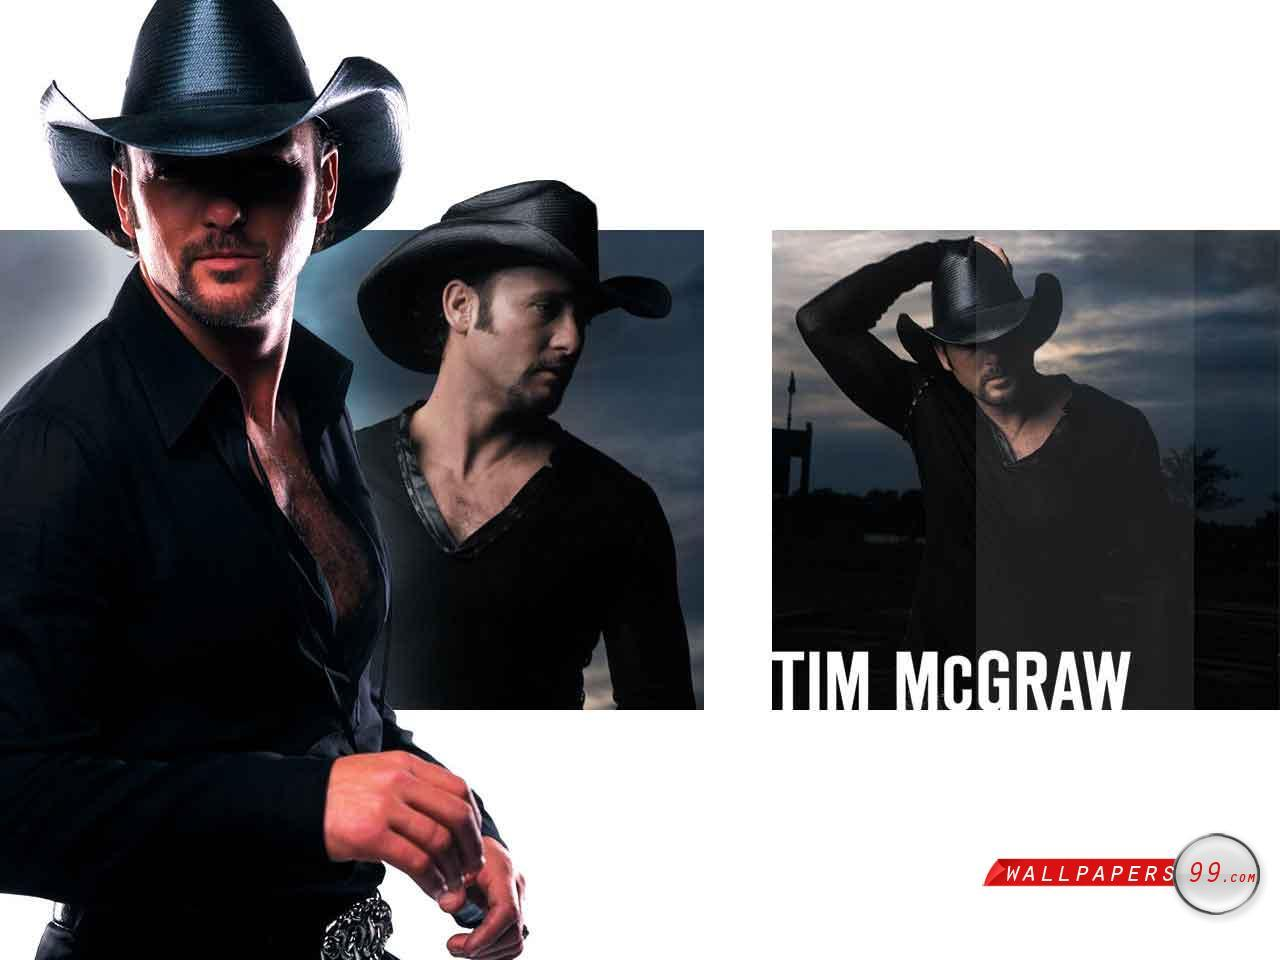 Tim McGraw Wallpapers Picture Image 1280x960 16963